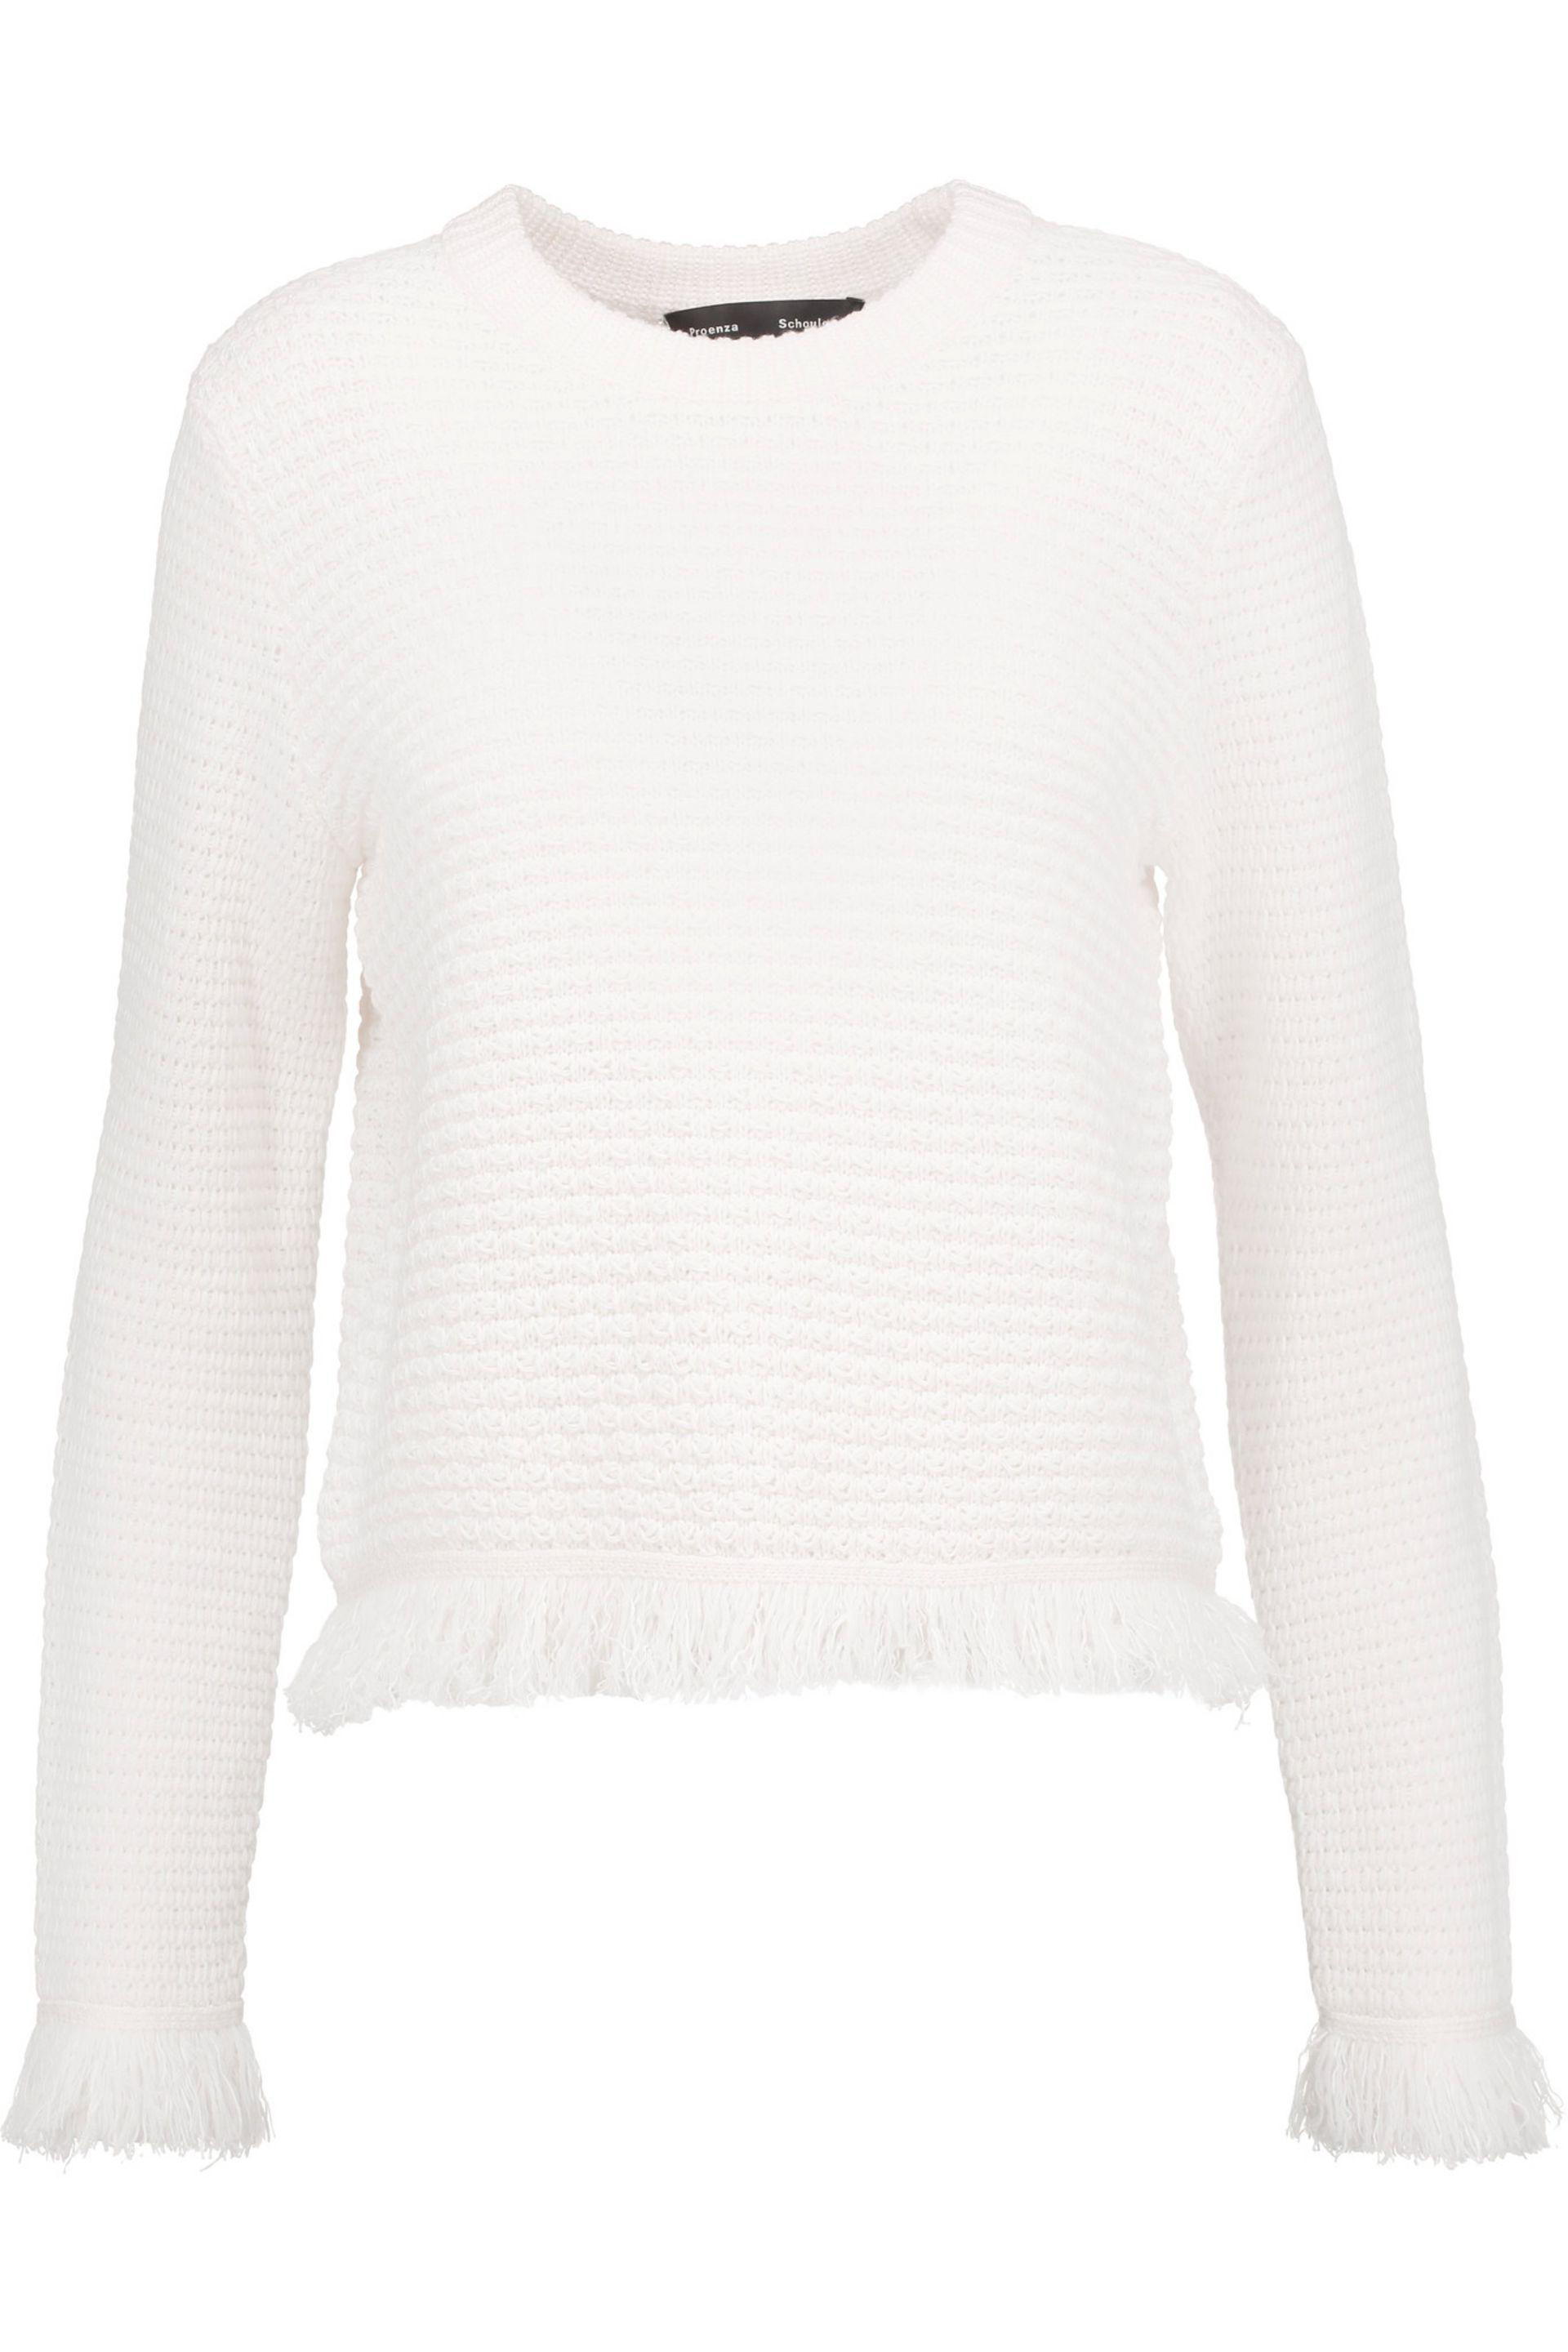 Wool White Sweater Schouler Blend Proenza Color 4qwS8gg5